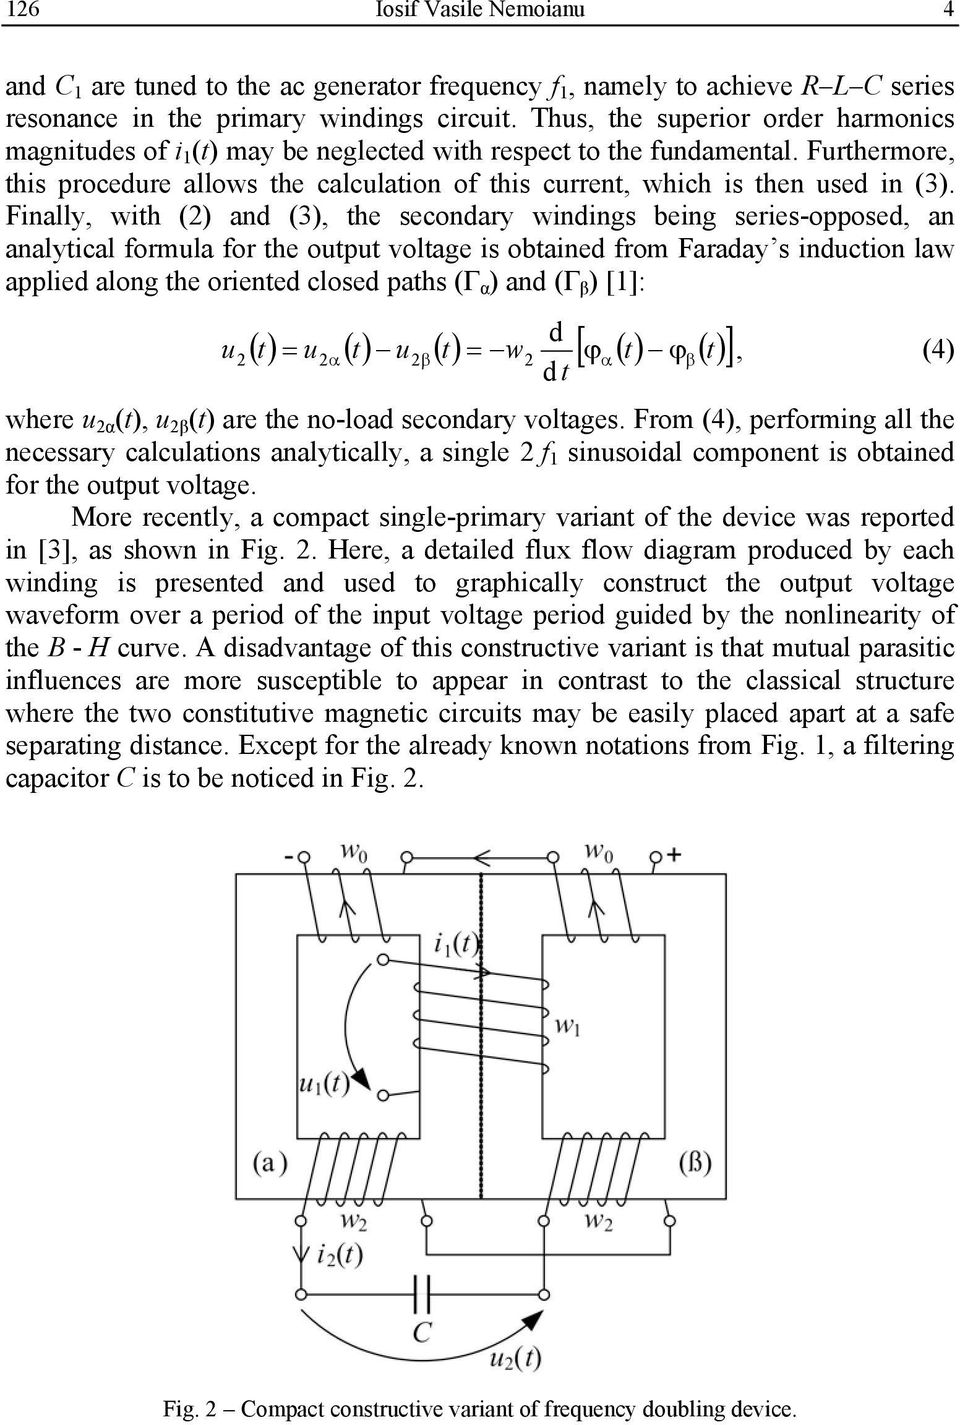 Study Of The Voltage Frequency Doubler With Nonlinear Iron Core A Effect For Electric Guitar Furthermore This Procedure Allows Calculation Current Which Is Then Used In